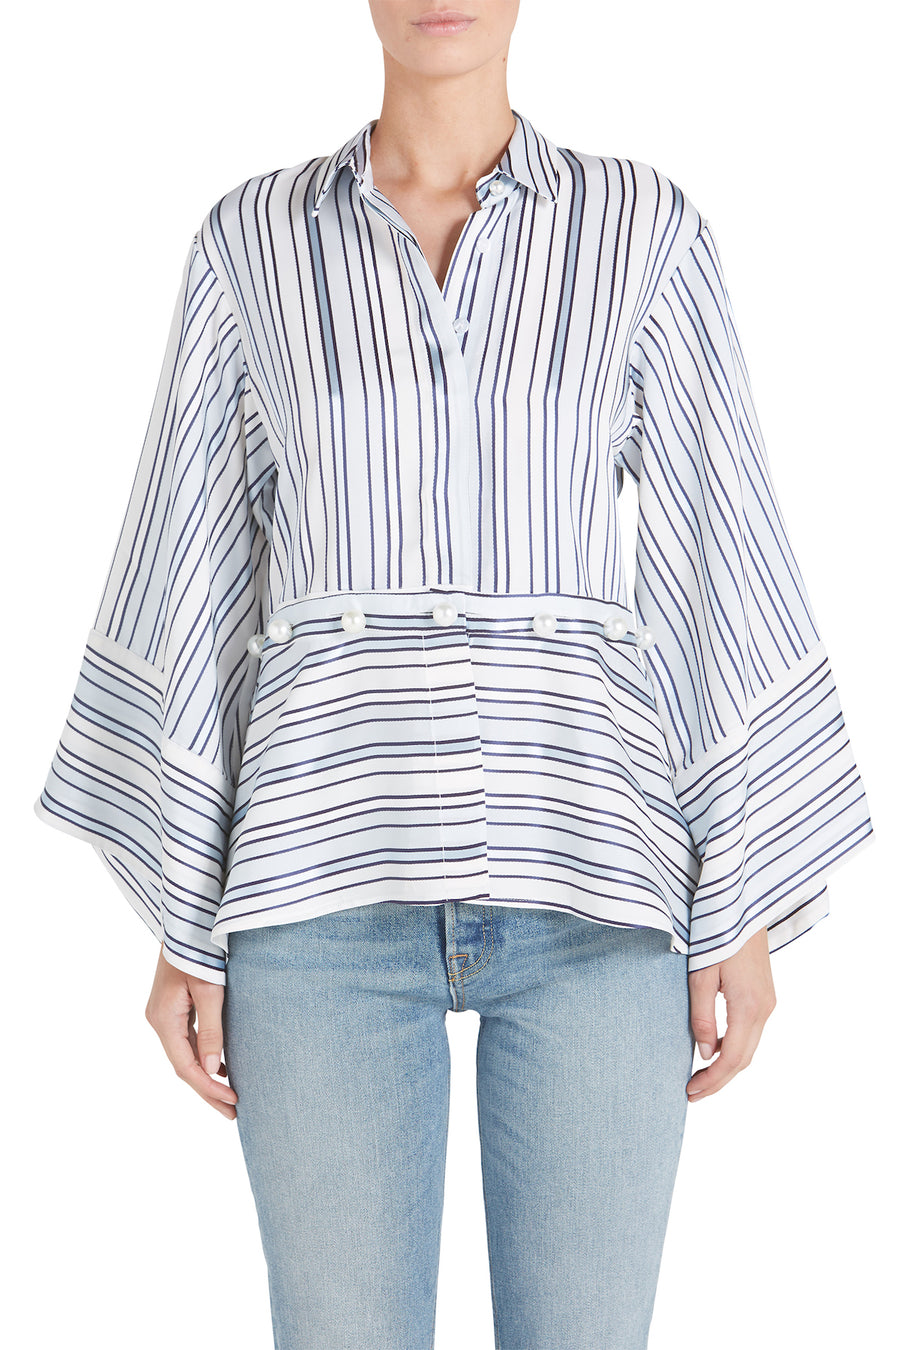 ADETTE STRIPE TOP WITH BUTTONS